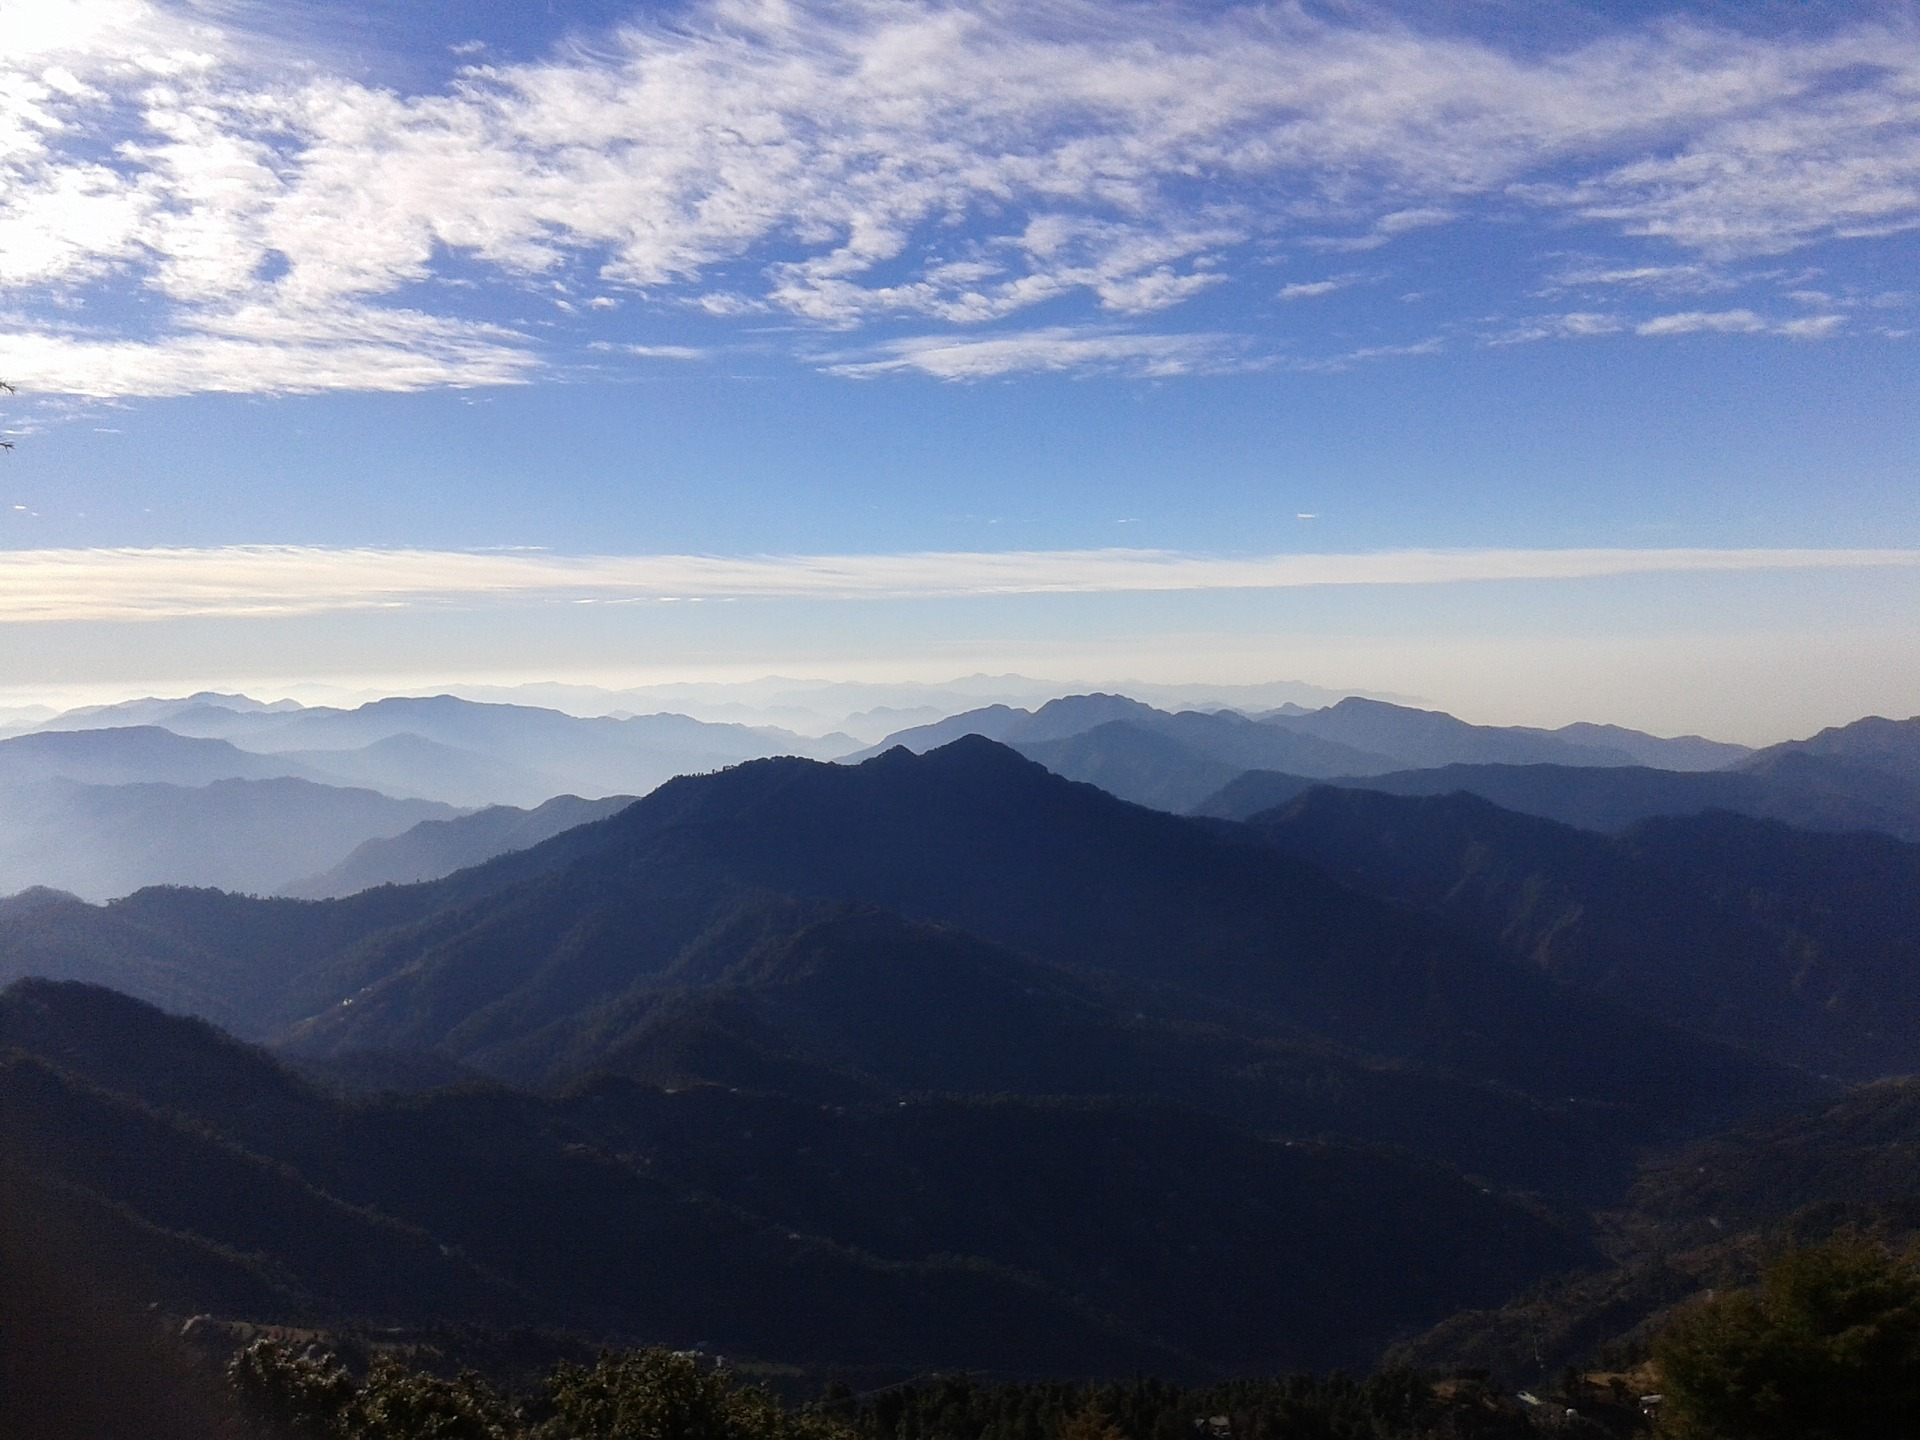 Catch breathtaking mountain views in Mussoorie.